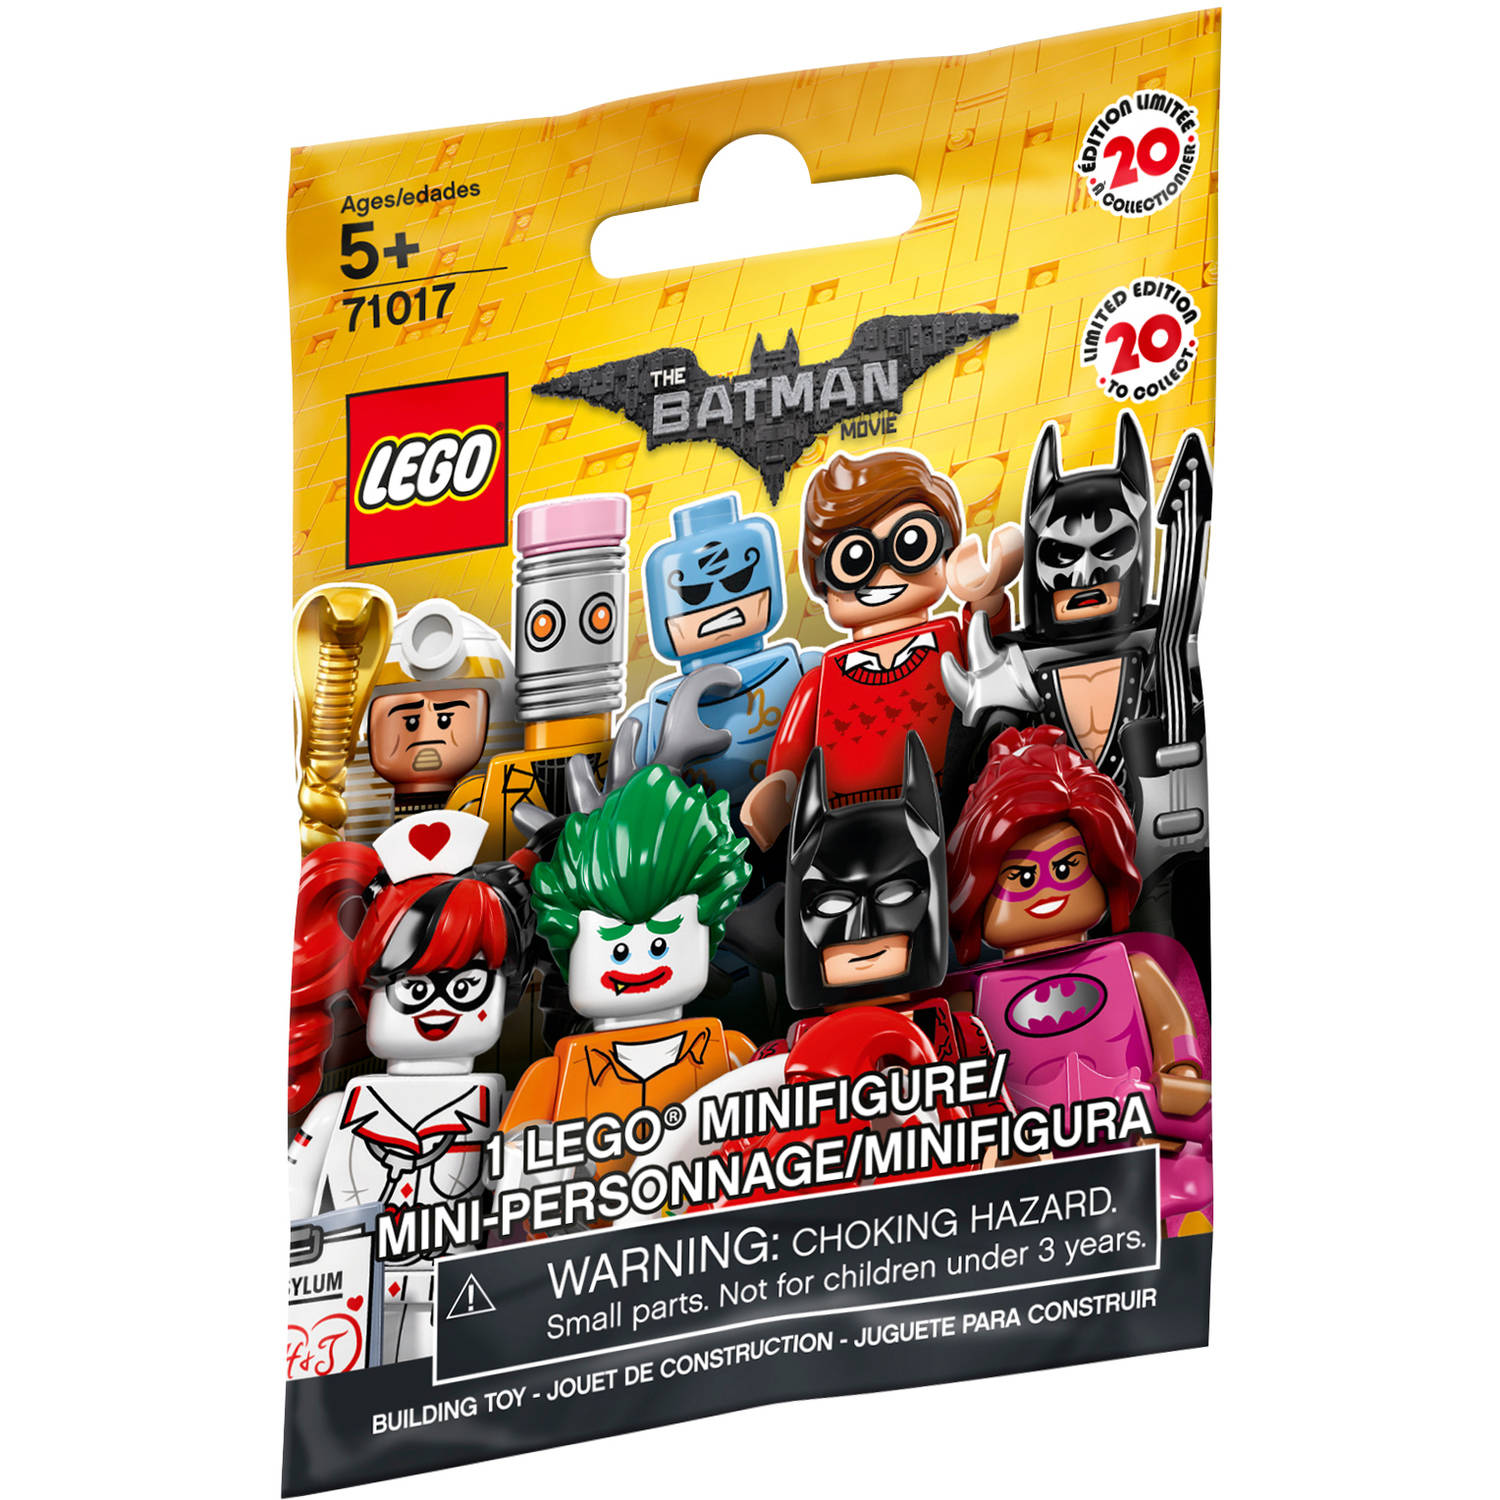 The Lego Batman Movie Minifigure Mystery Bag 71017